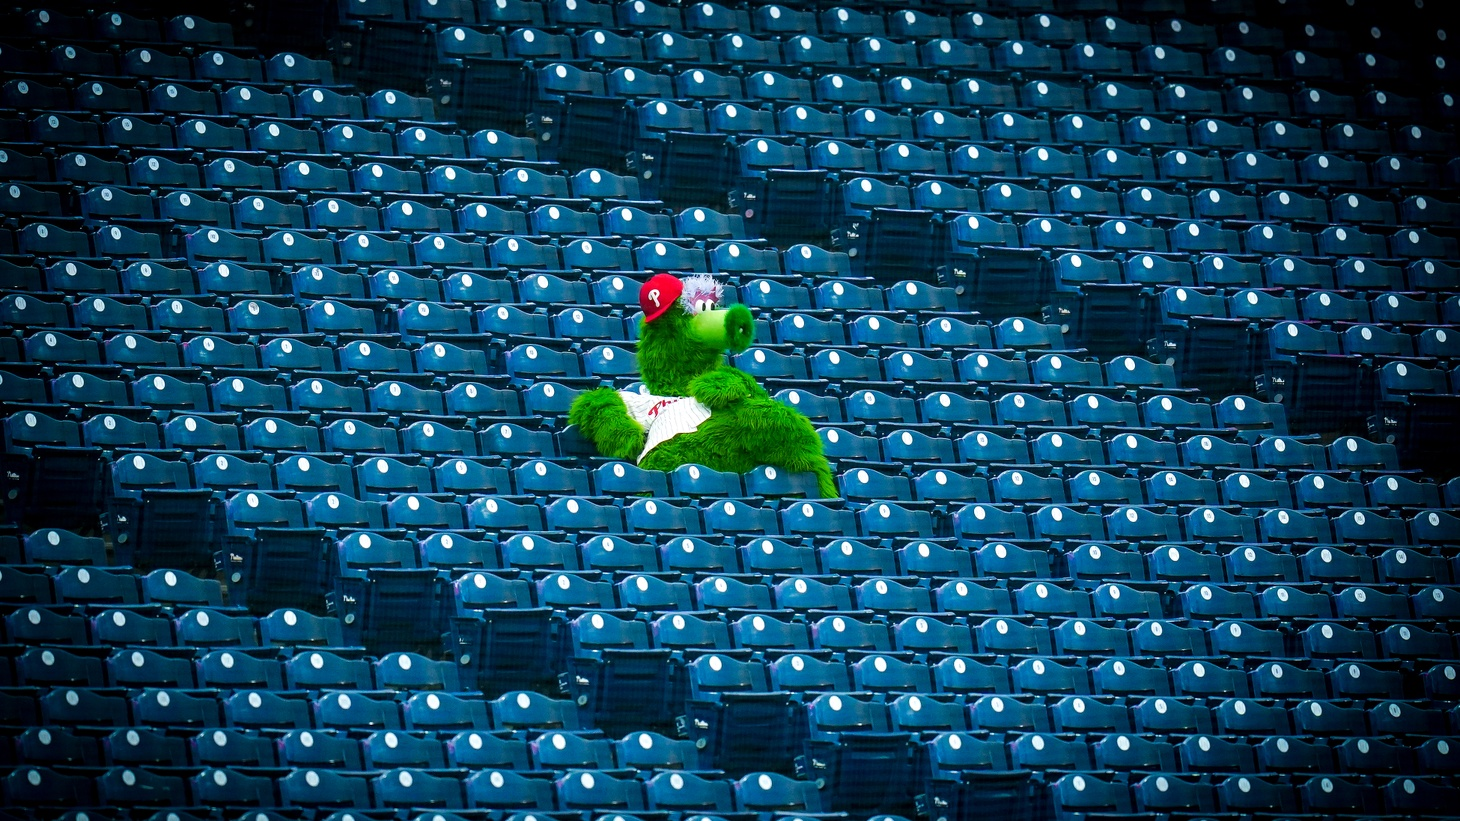 The Phillie Phanatic sits in an empty stadium as fans are watching games from home during the coronavirus pandemic.